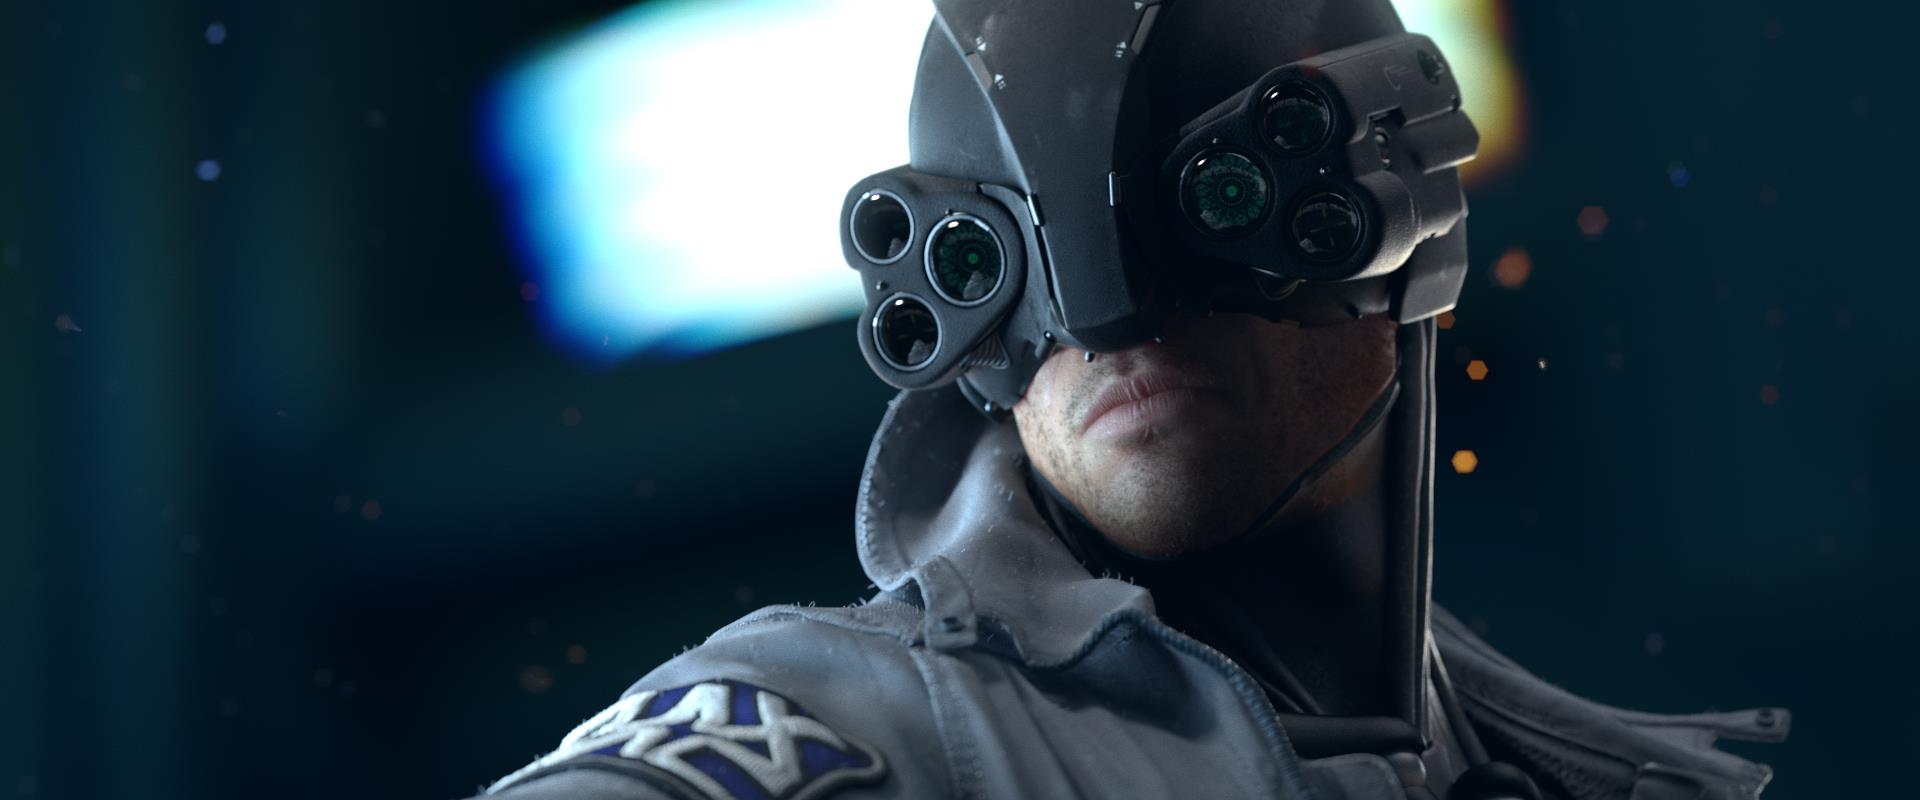 Cyberpunk 2077 now has more people working on it than The Witcher 3 ever did